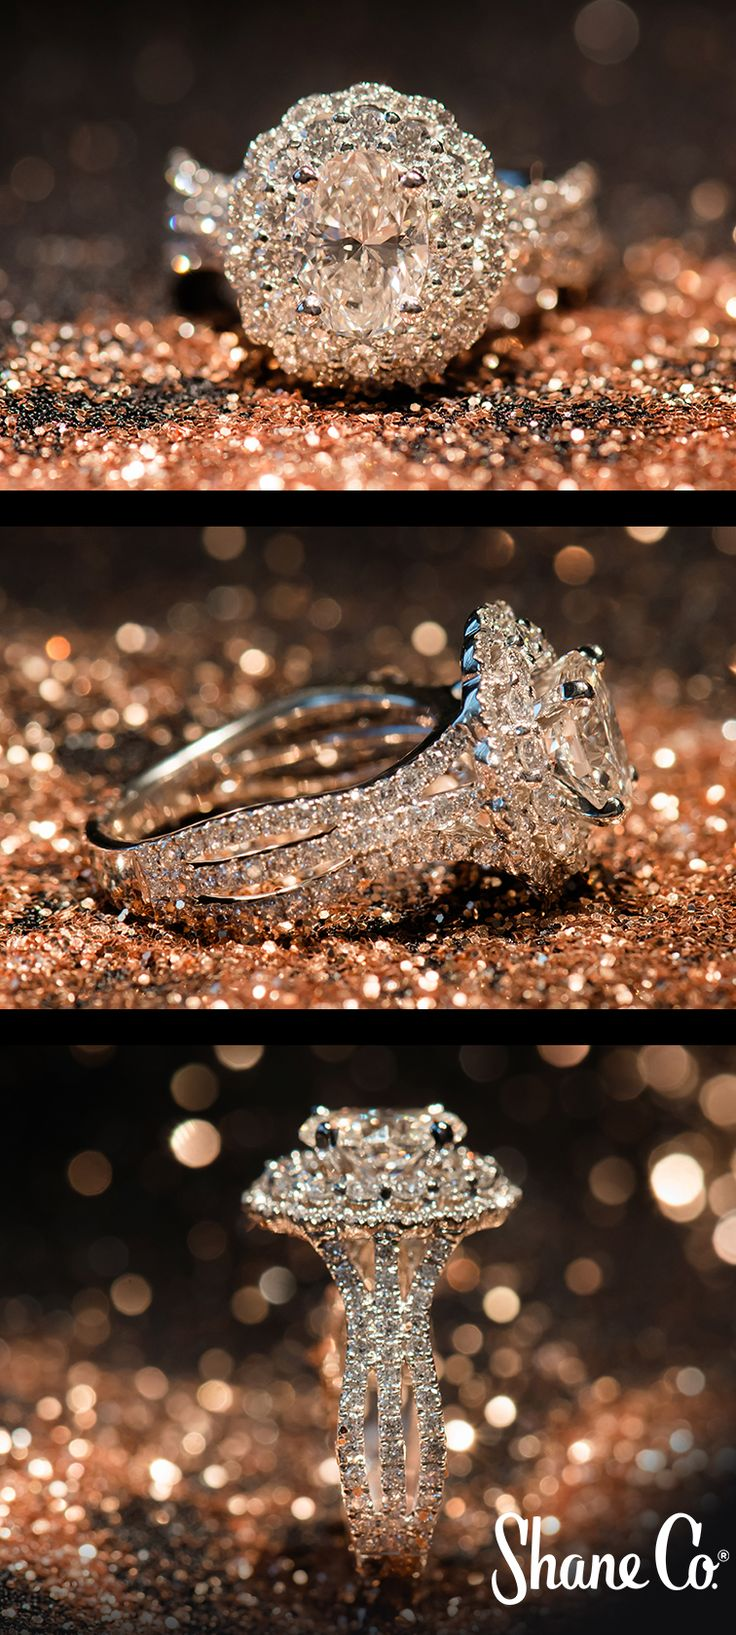 """Still searching for """"the one""""? Browse hundreds of exclusive halo engagement ring styles at Shane Co. and find the perfect one for your style."""